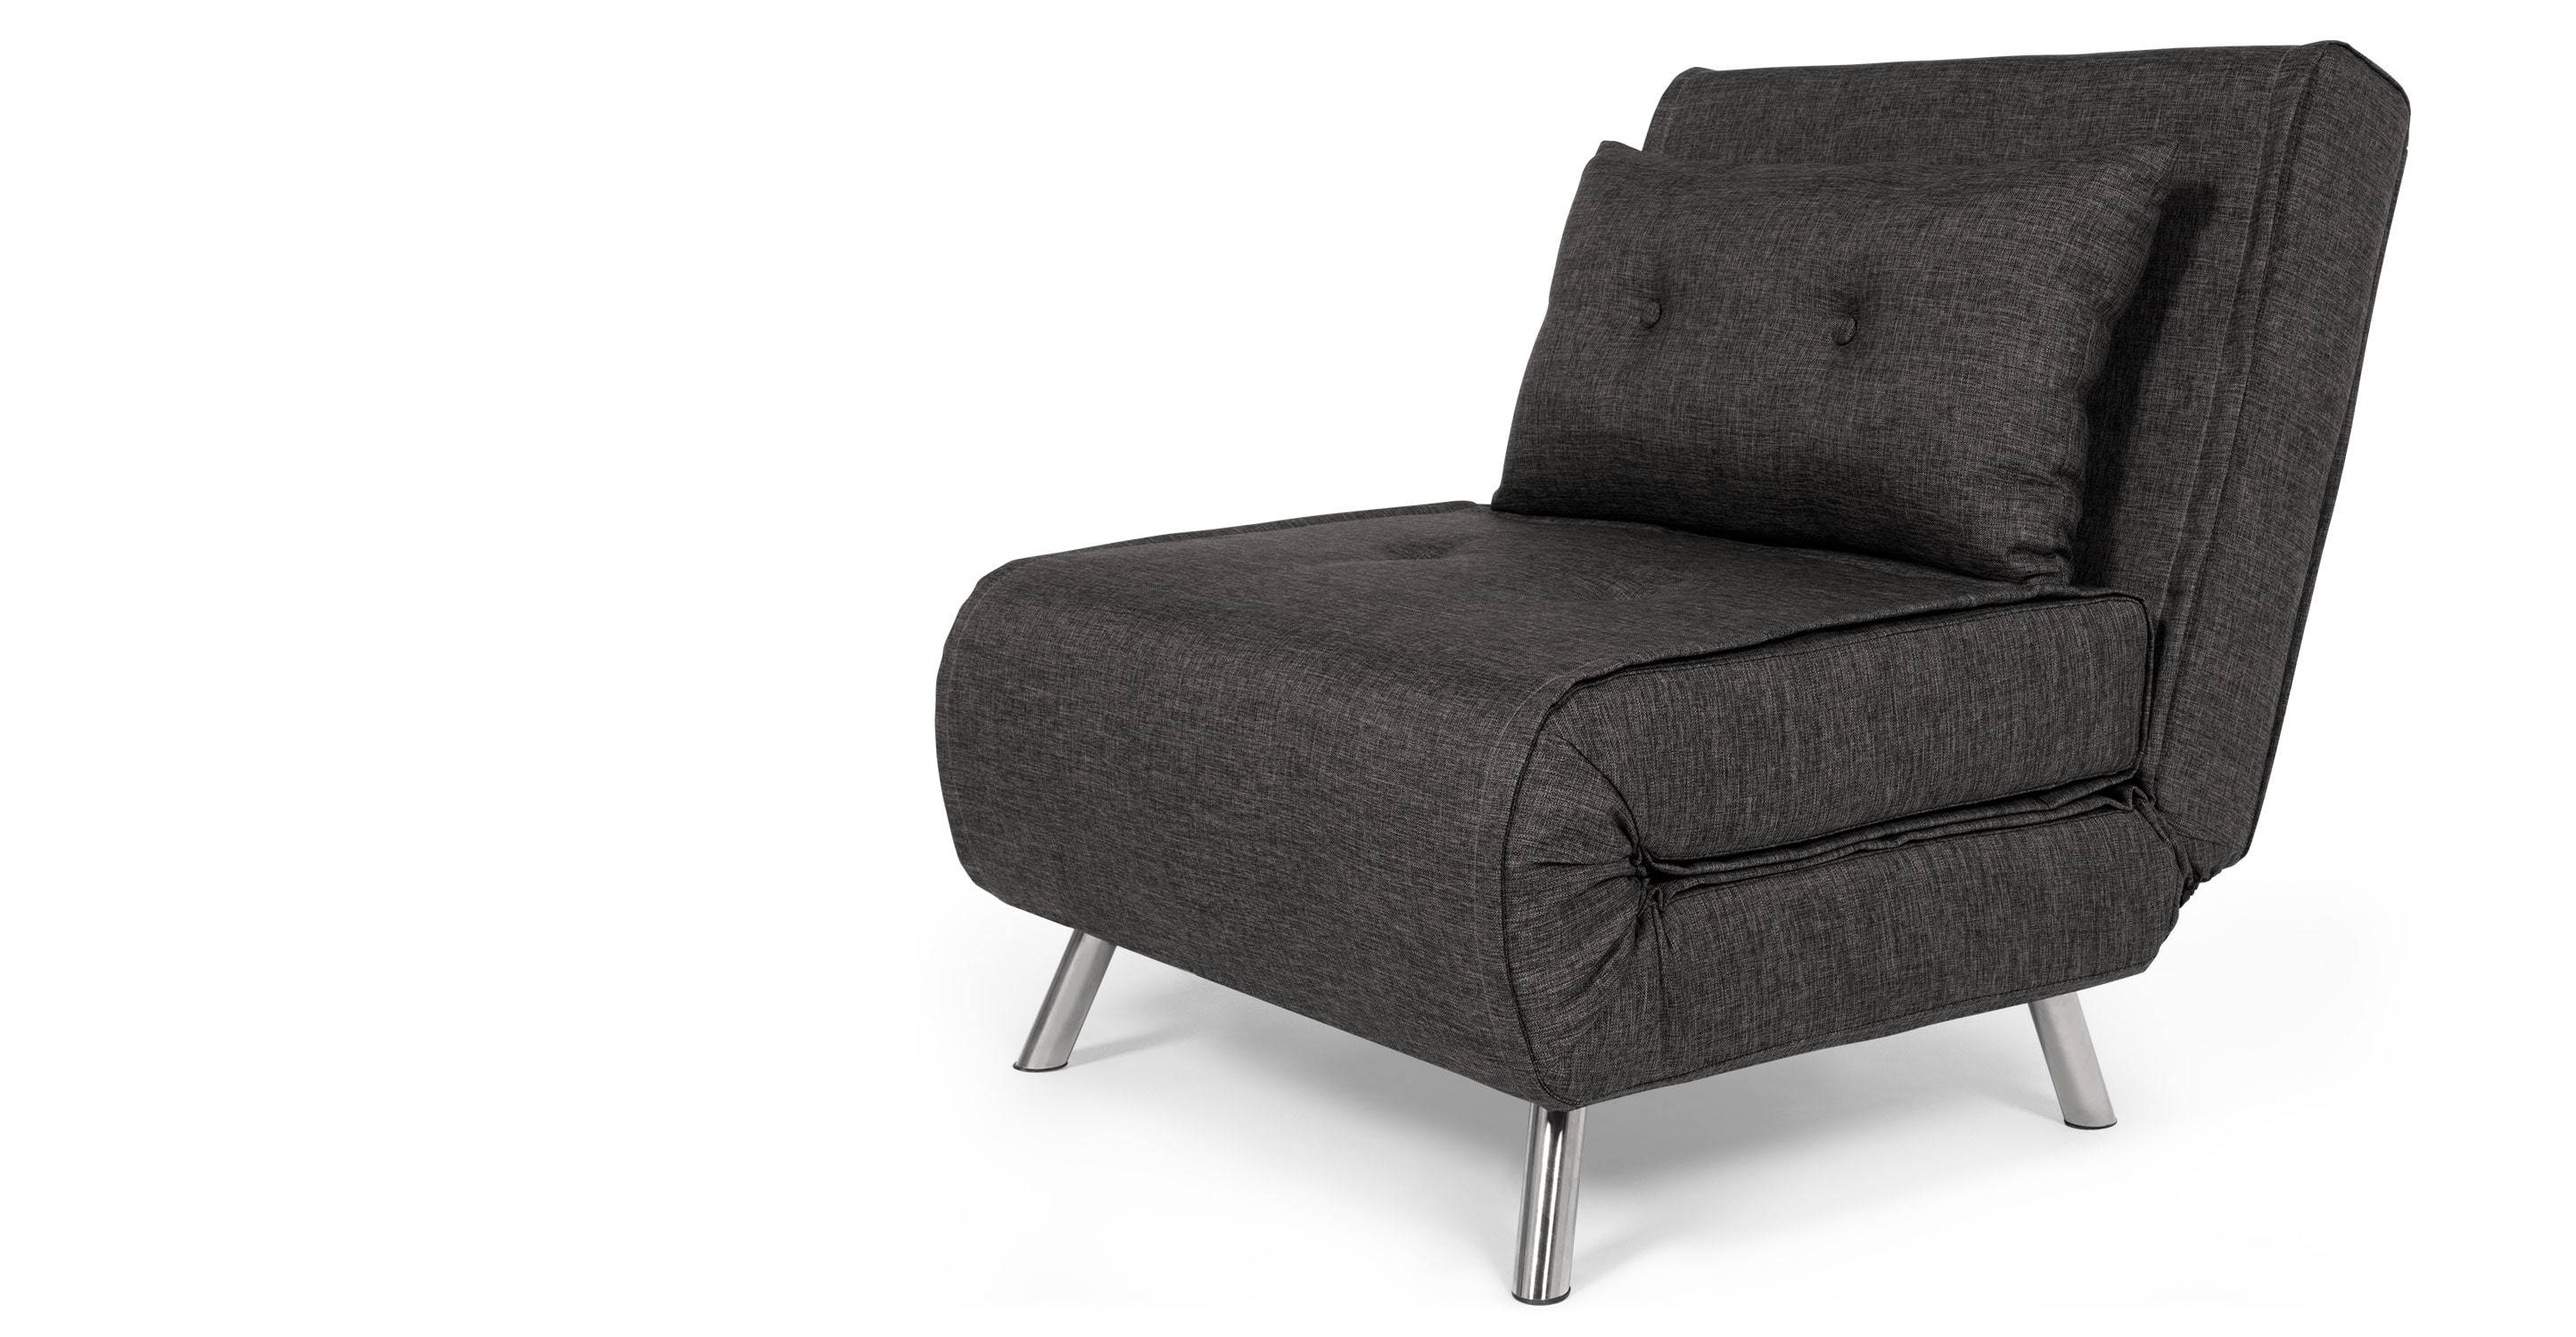 Haru Single Sofa Bed, Cygnet Grey | Made within Single Seat Sofa Chairs (Image 4 of 15)